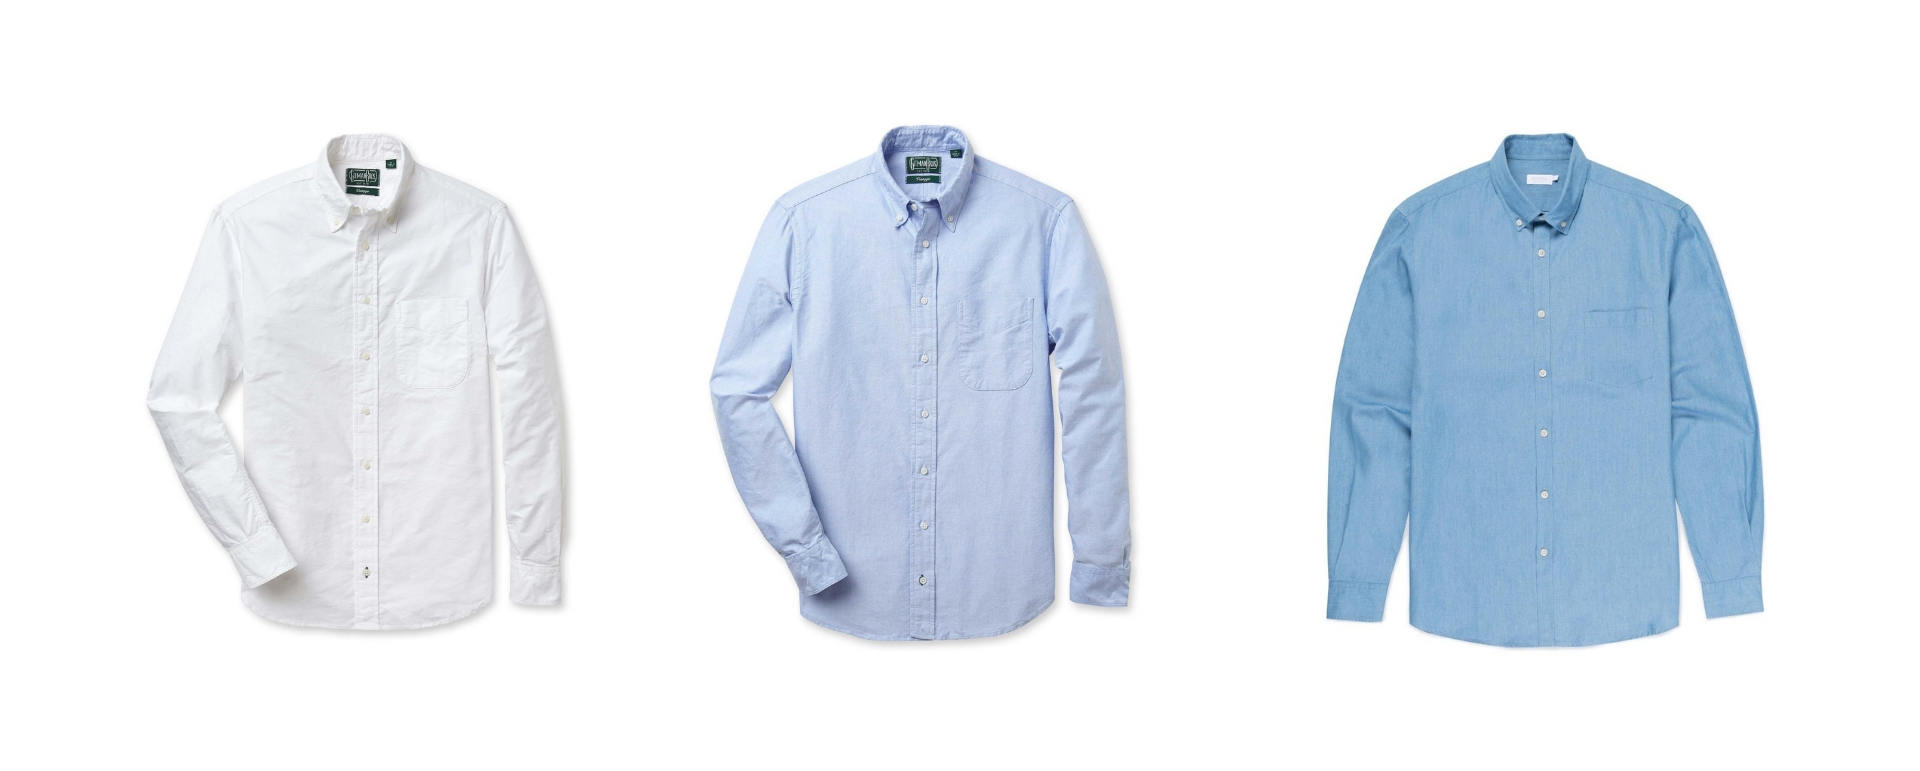 Smart casual shirts ss